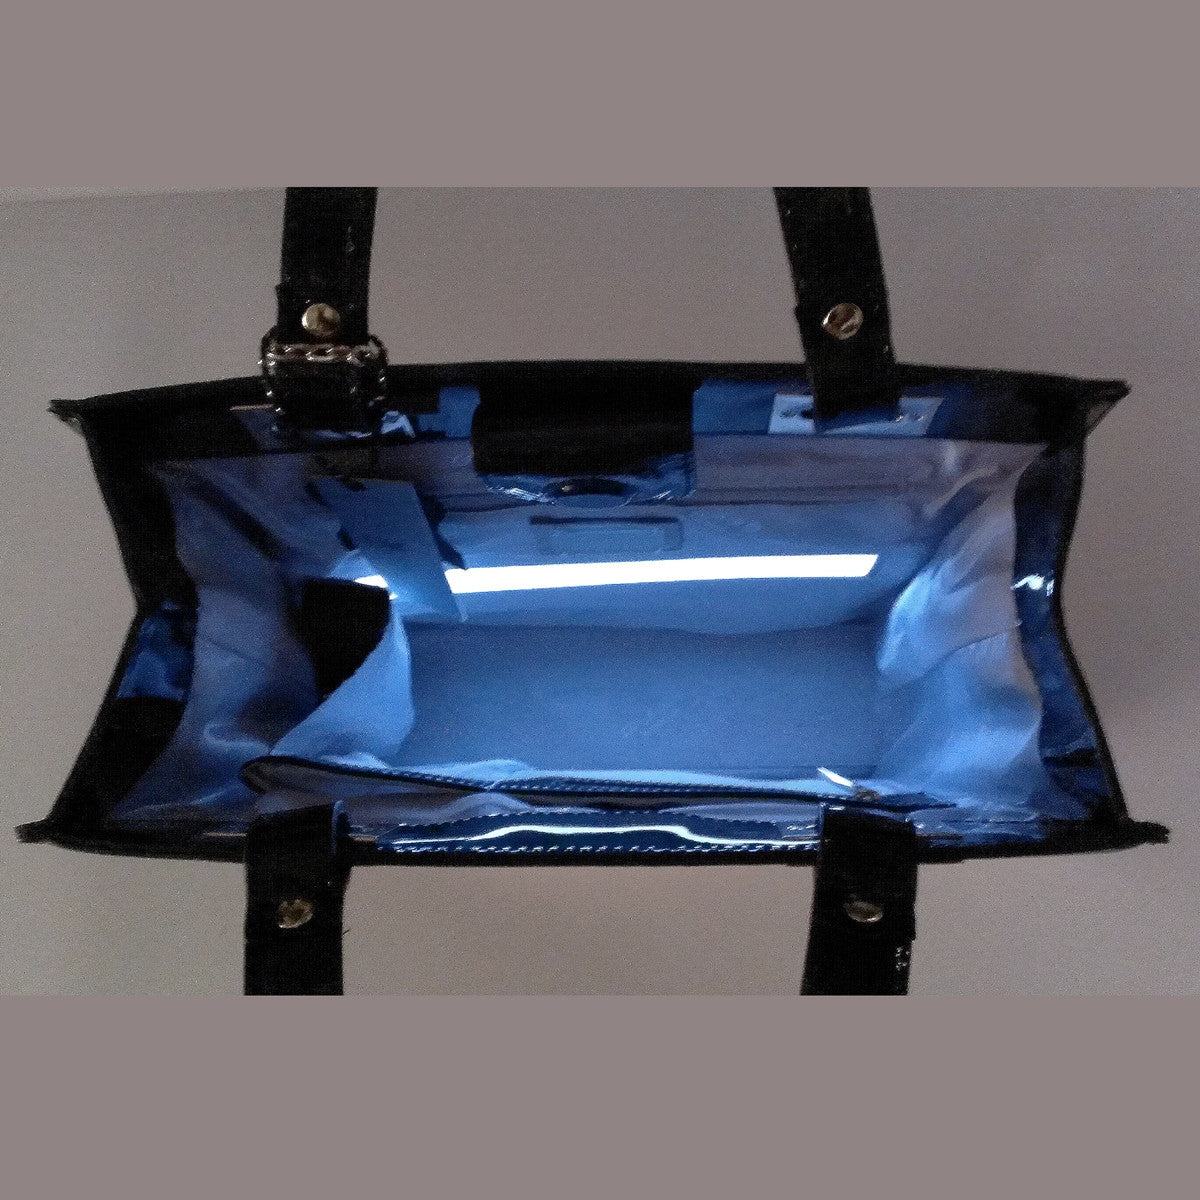 Glass Handbag Jewel Patent Shoulder Bag in Black Onyx with lighting system